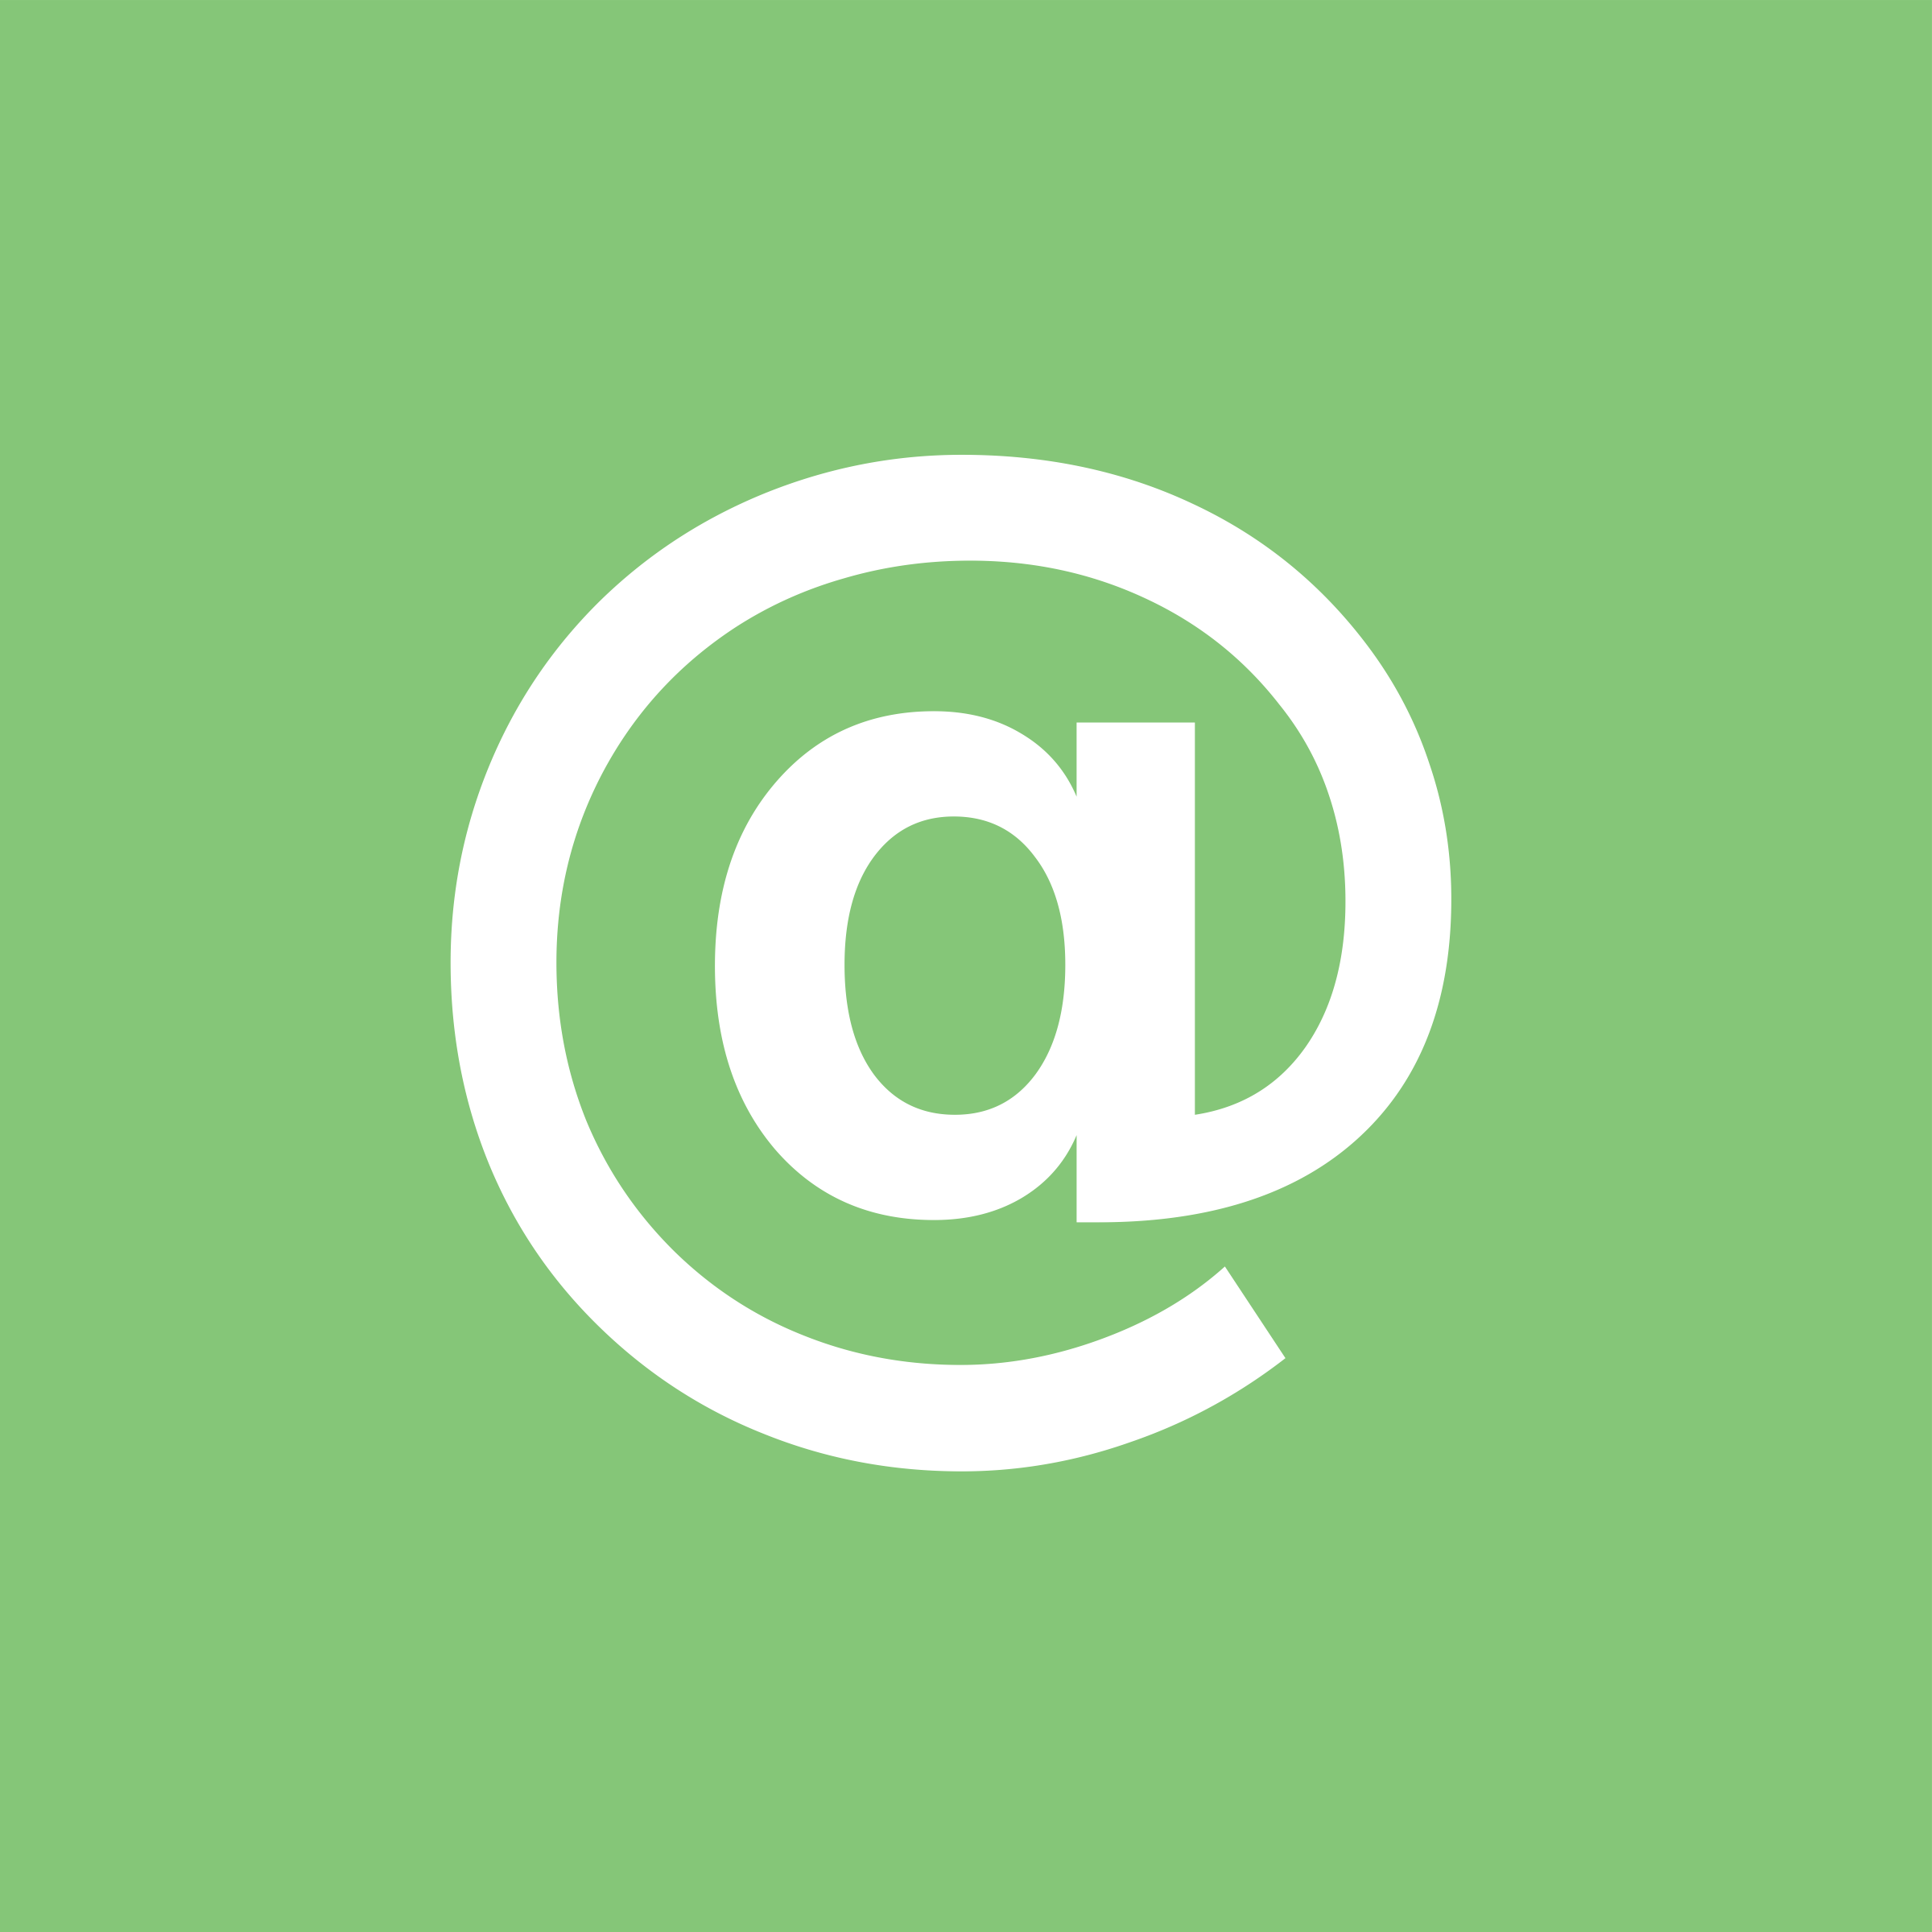 email square by pnoq